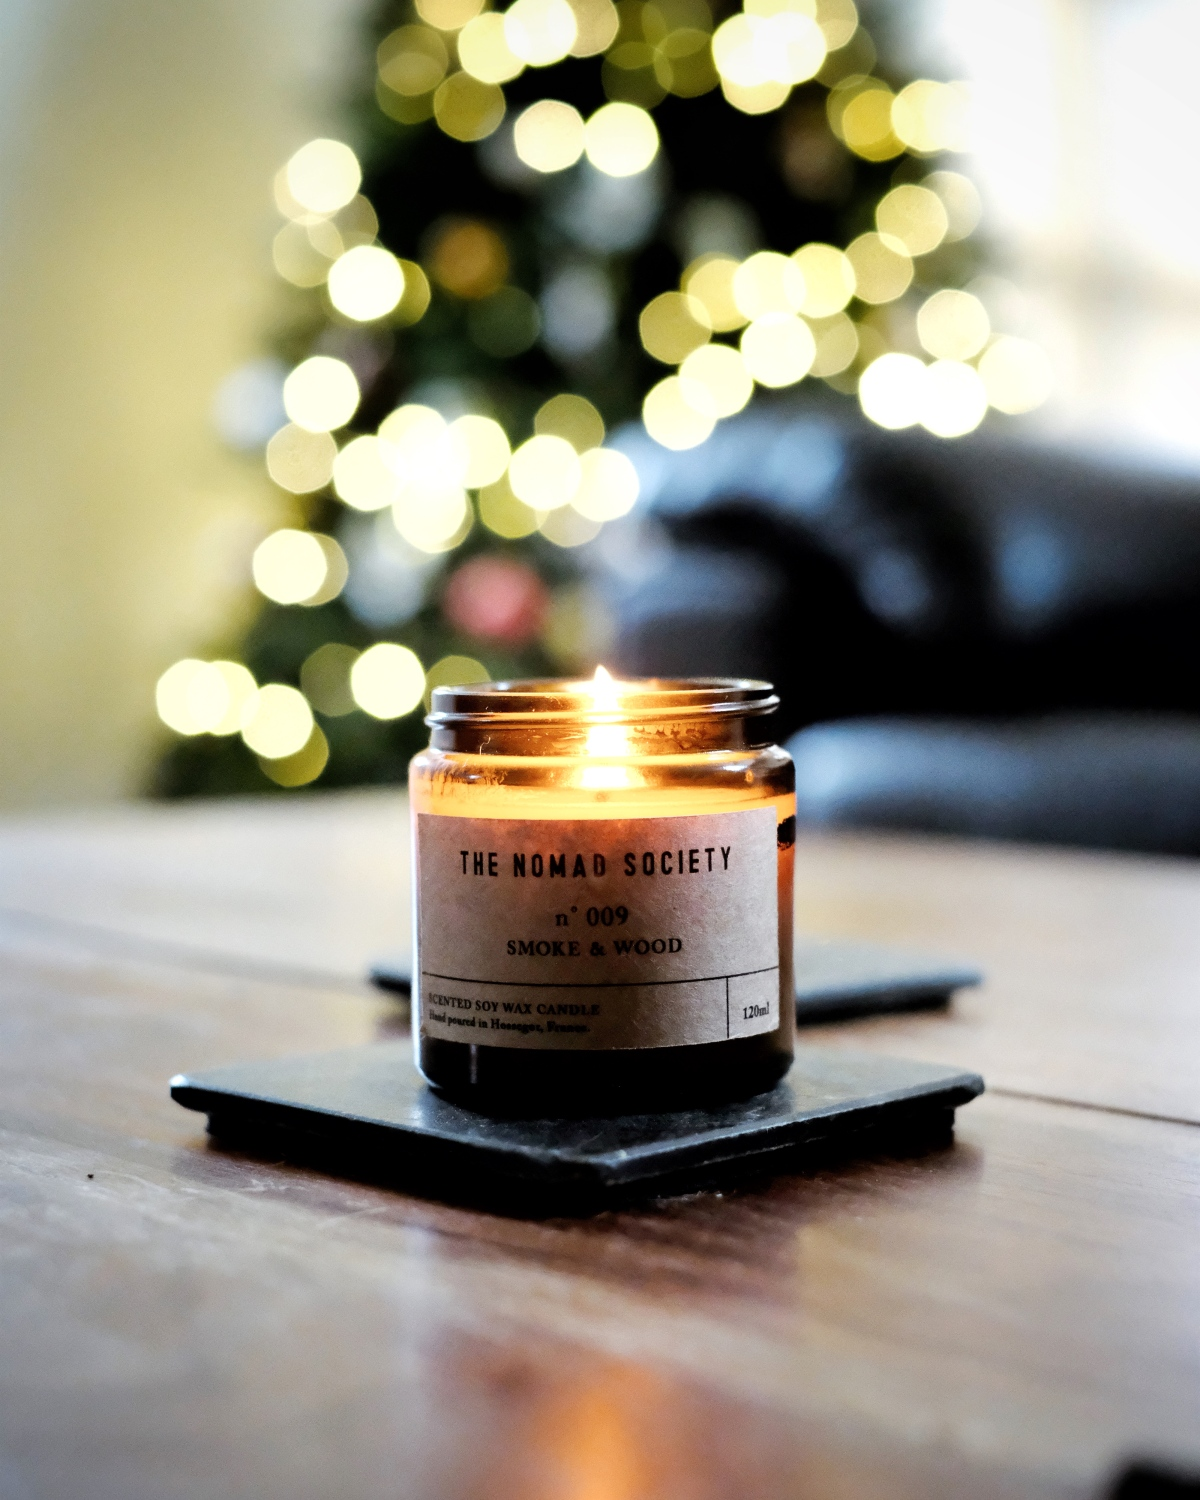 Best natural vegetable bees coconut soy wax scented candles that are dog-friendly / Perfect cocker spaniel blog / book about English cocker spaniels / puppy guide English cocker spaniel advice, tips, training, grooming, how to handstrip cocker spaniel / (C) Natalia Ashton